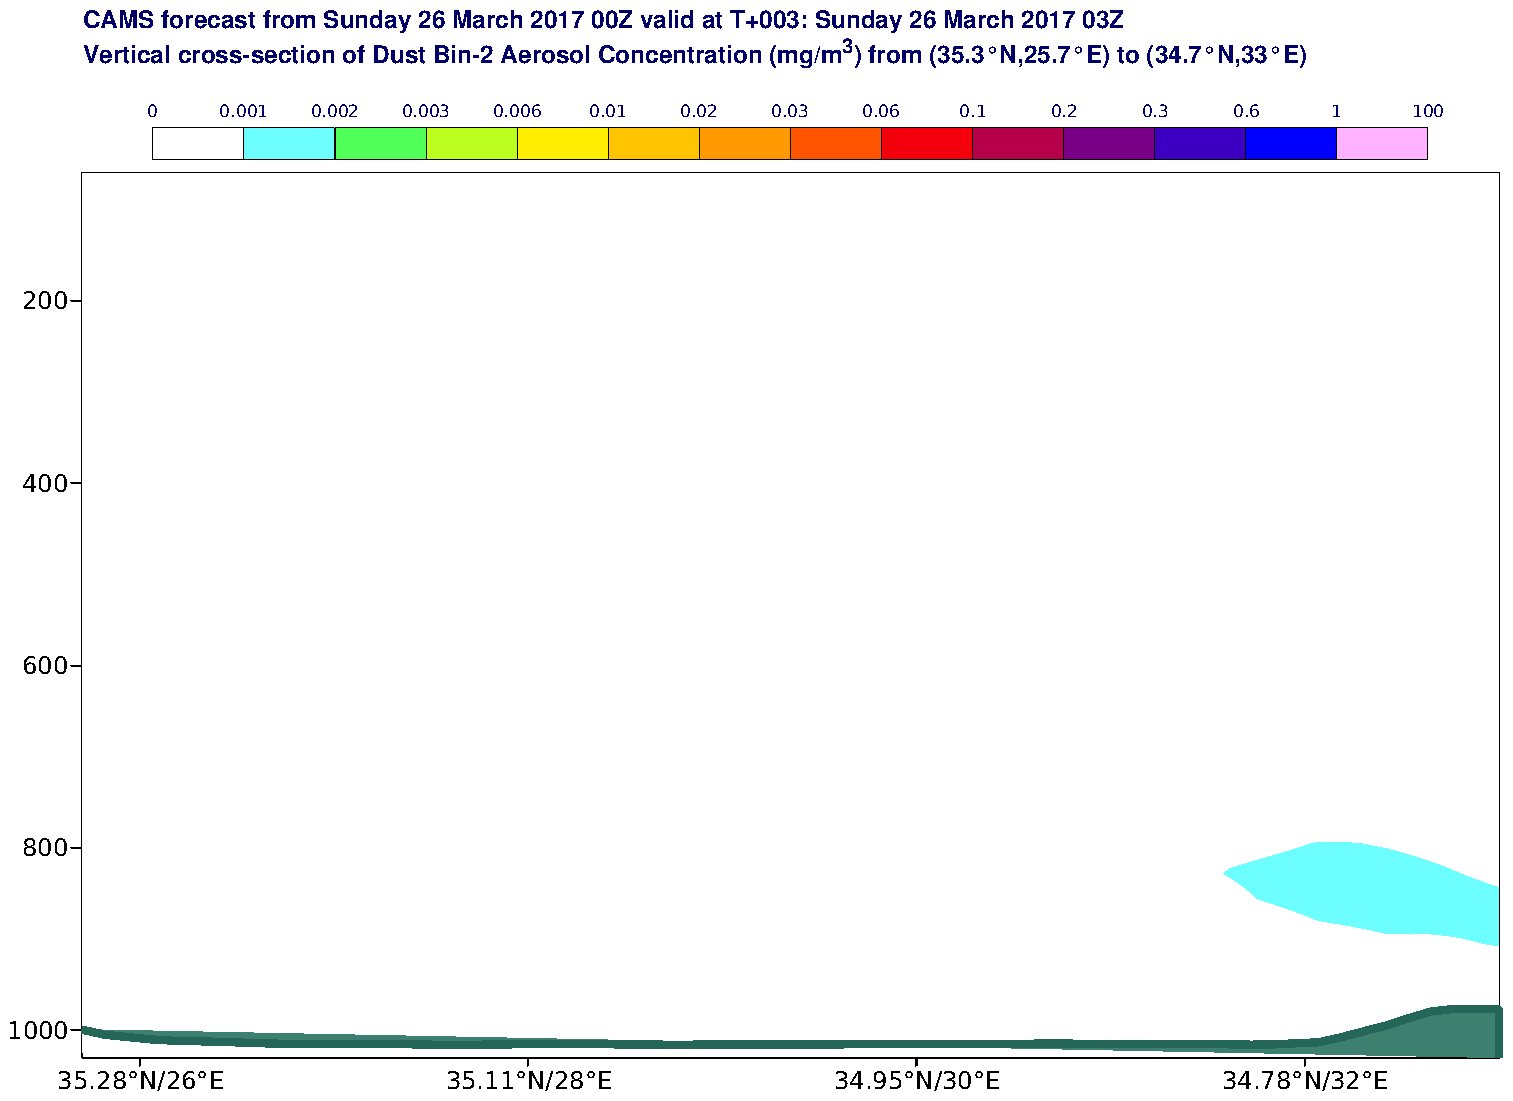 Vertical cross-section of Dust Bin-2 Aerosol Concentration (mg/m3) valid at T3 - 2017-03-26 03:00